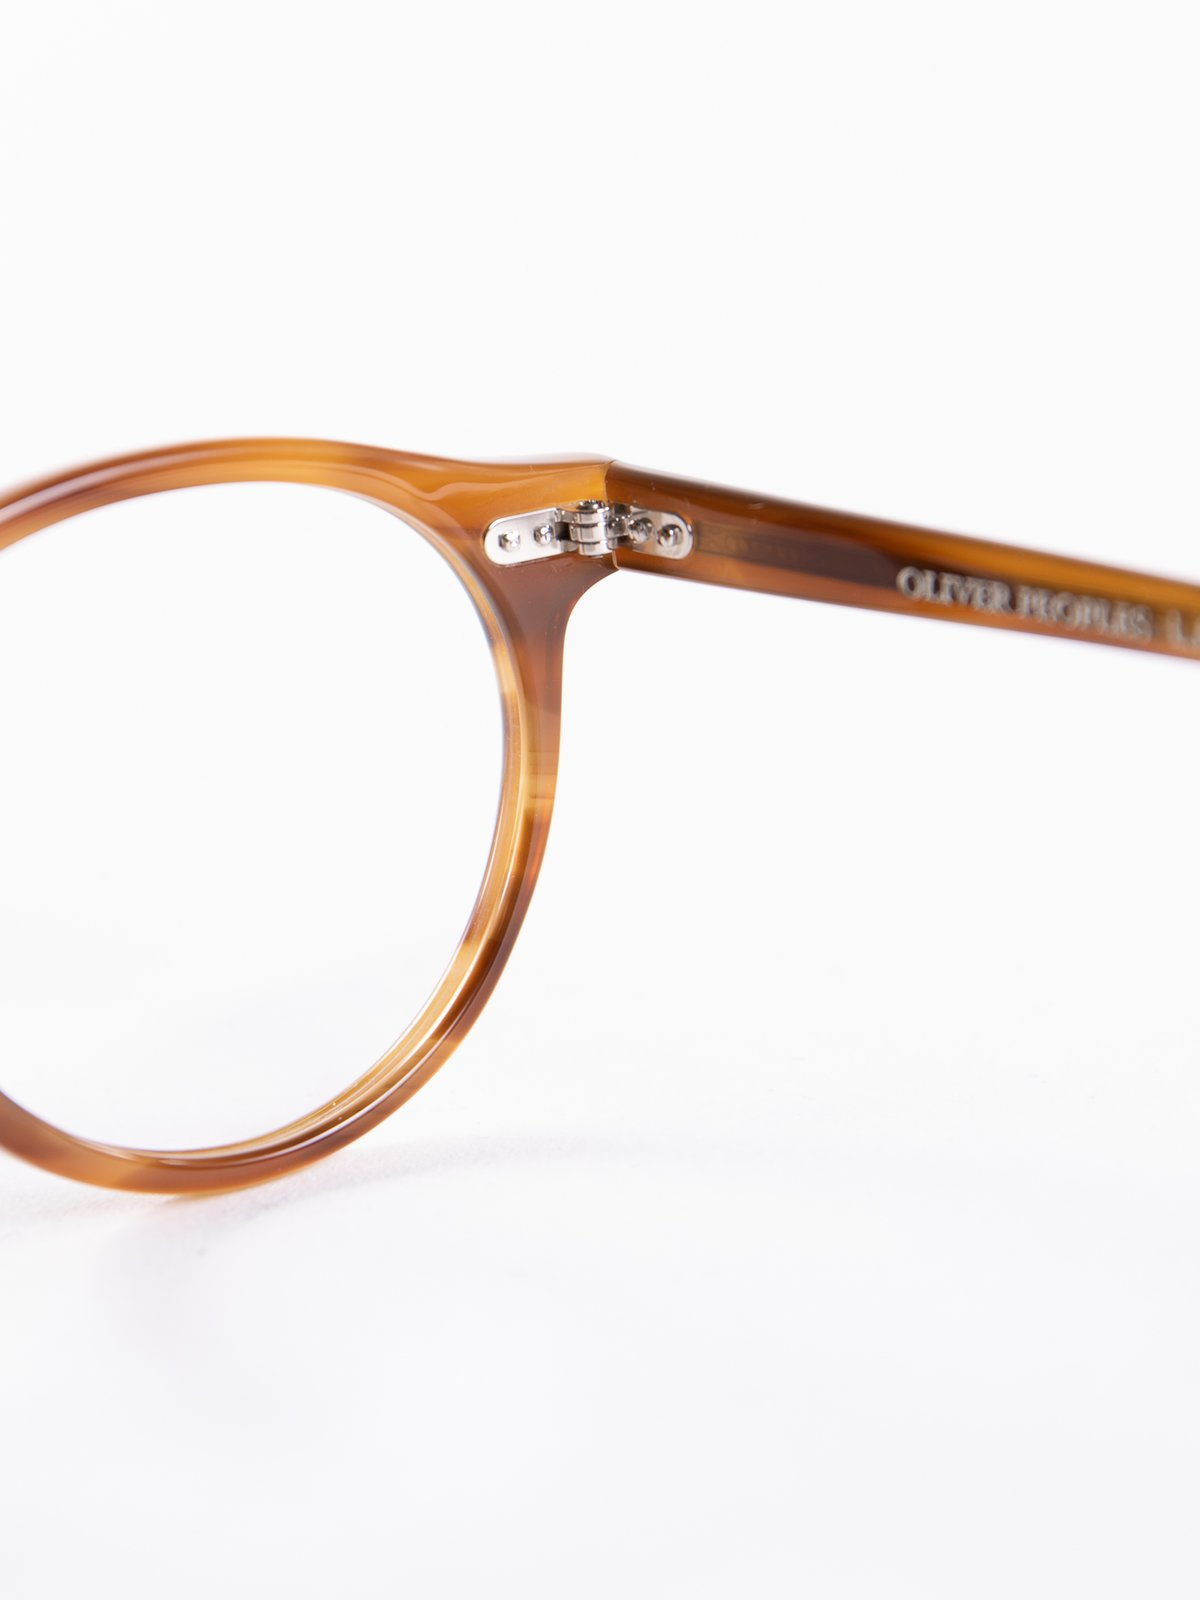 Raintree Gregory Peck Optical Frame - Image 4